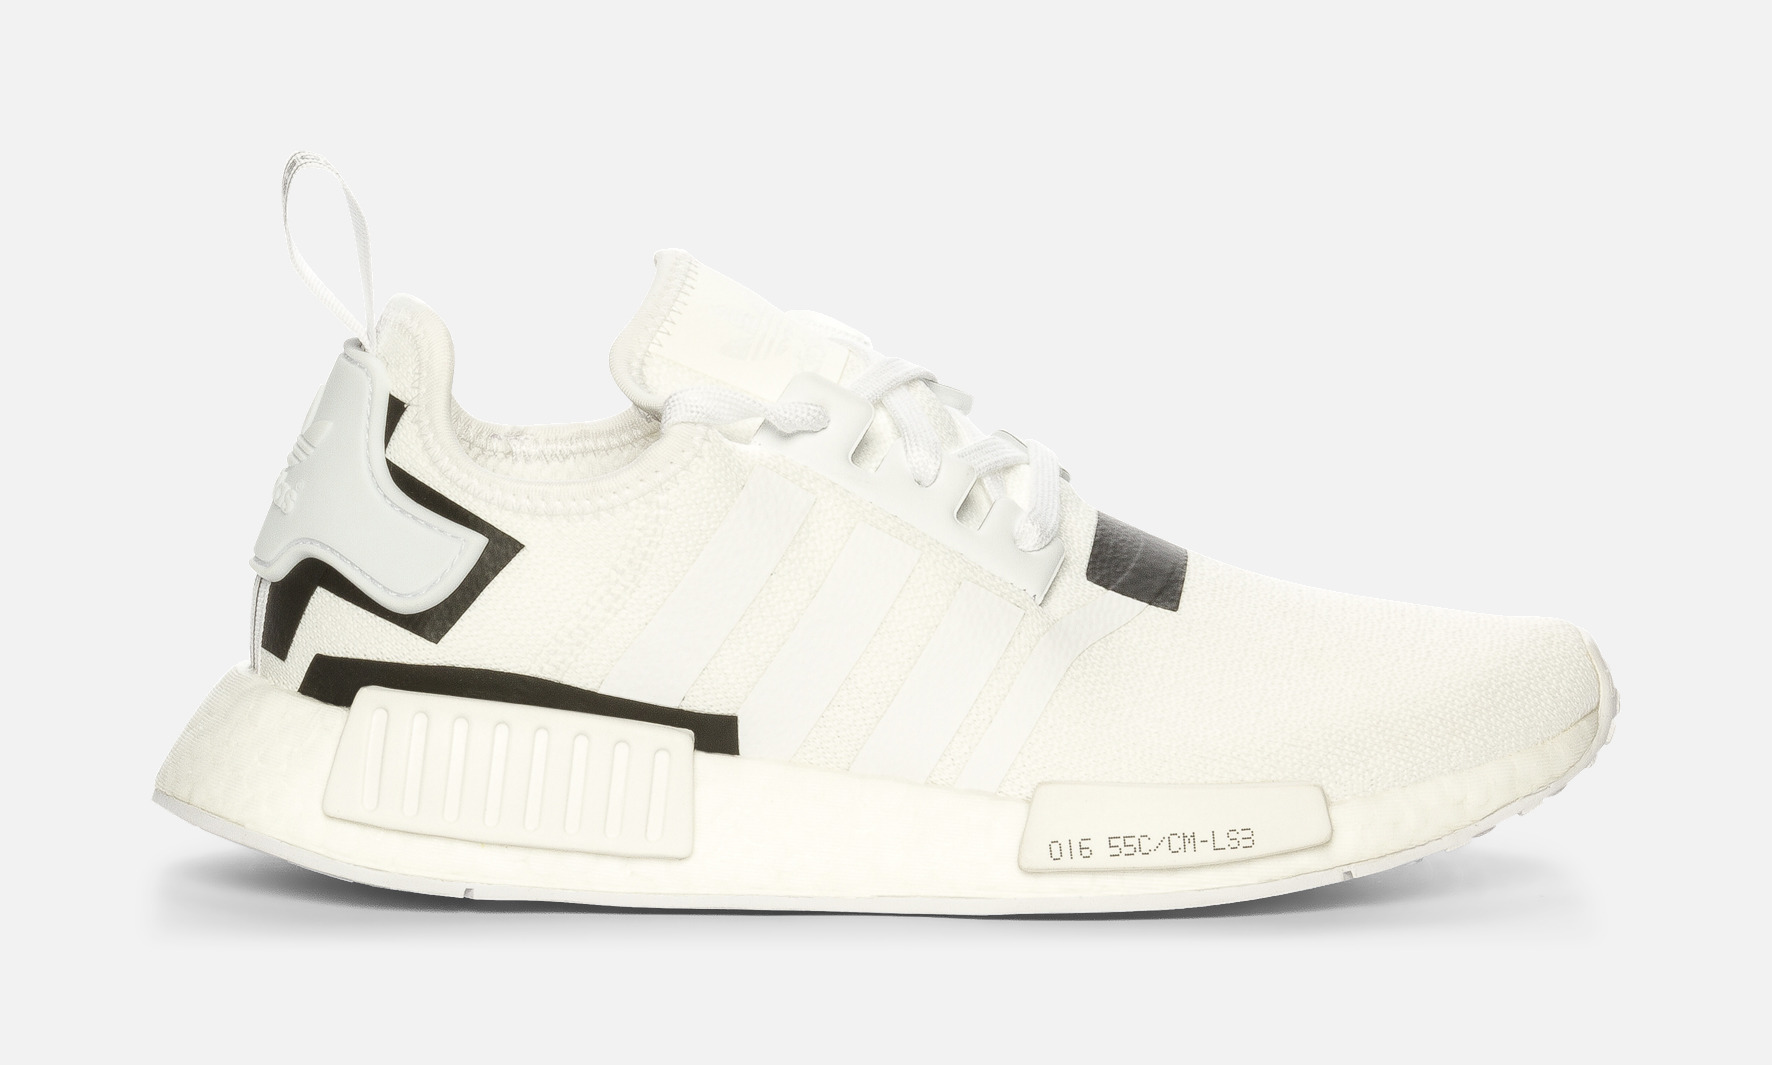 Adidas NMD – Handla NMD sneakers online | FEETFIRST.SE